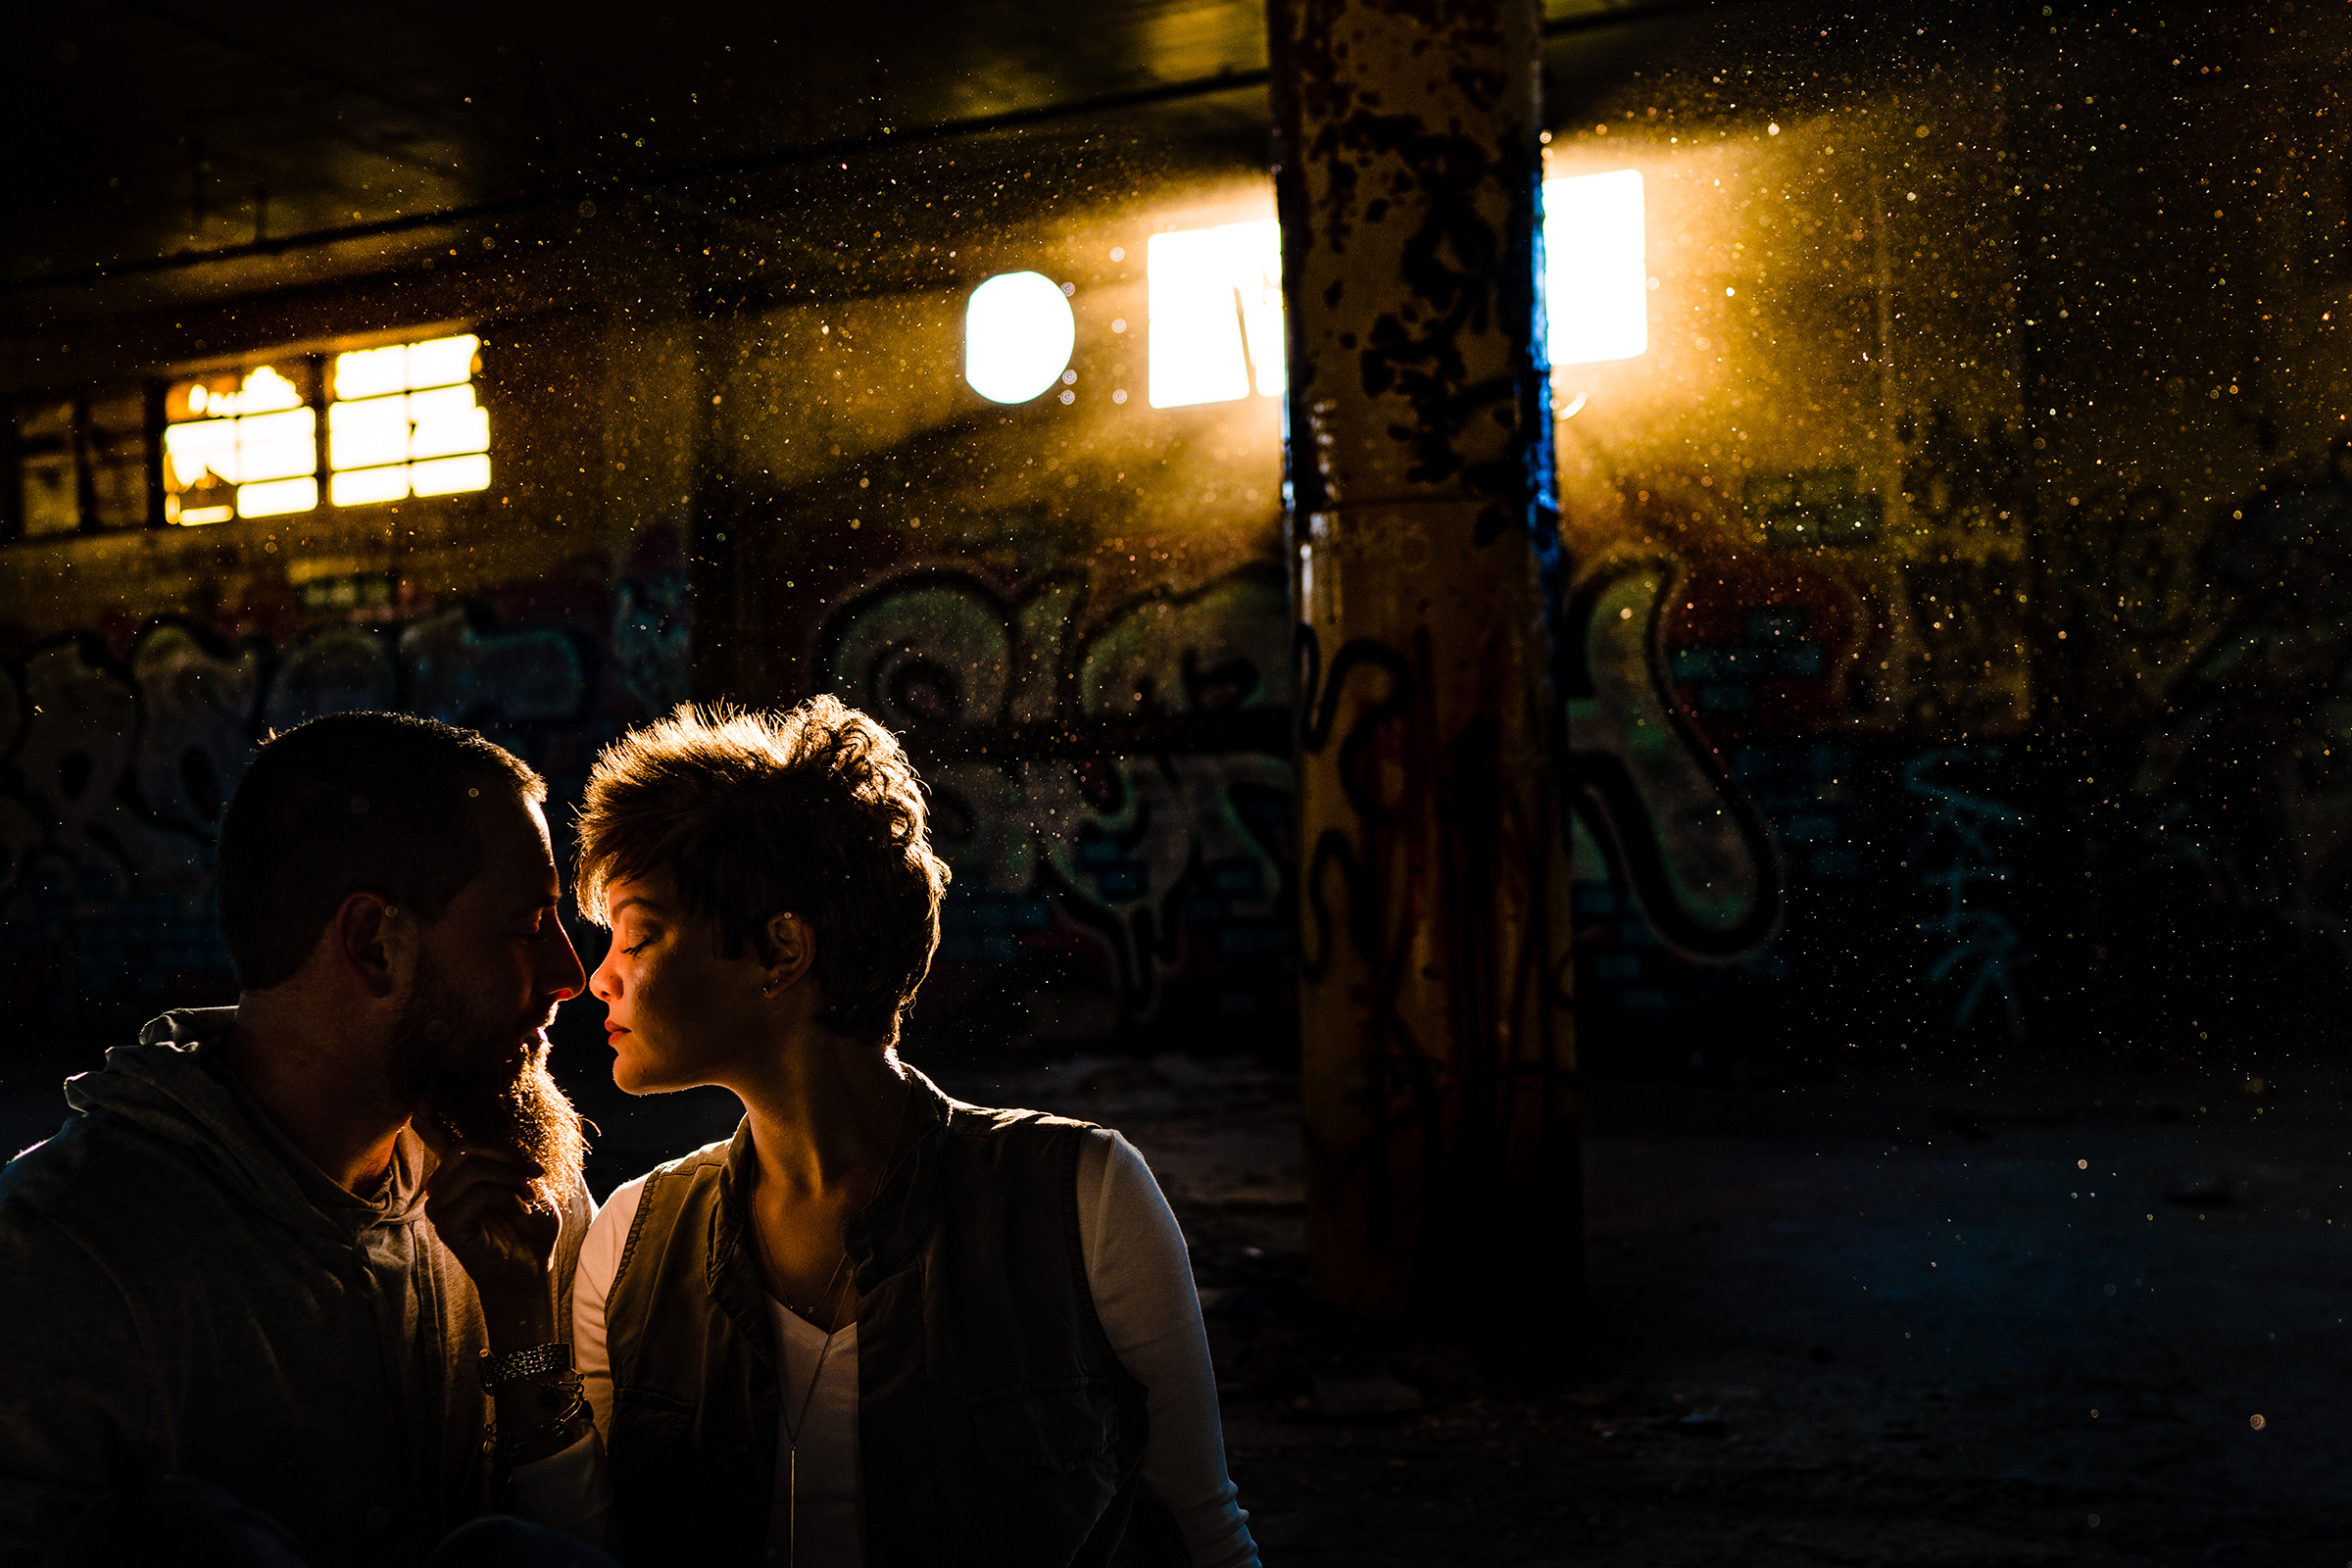 Moody photo of backlit couple - photo by Vinson Images